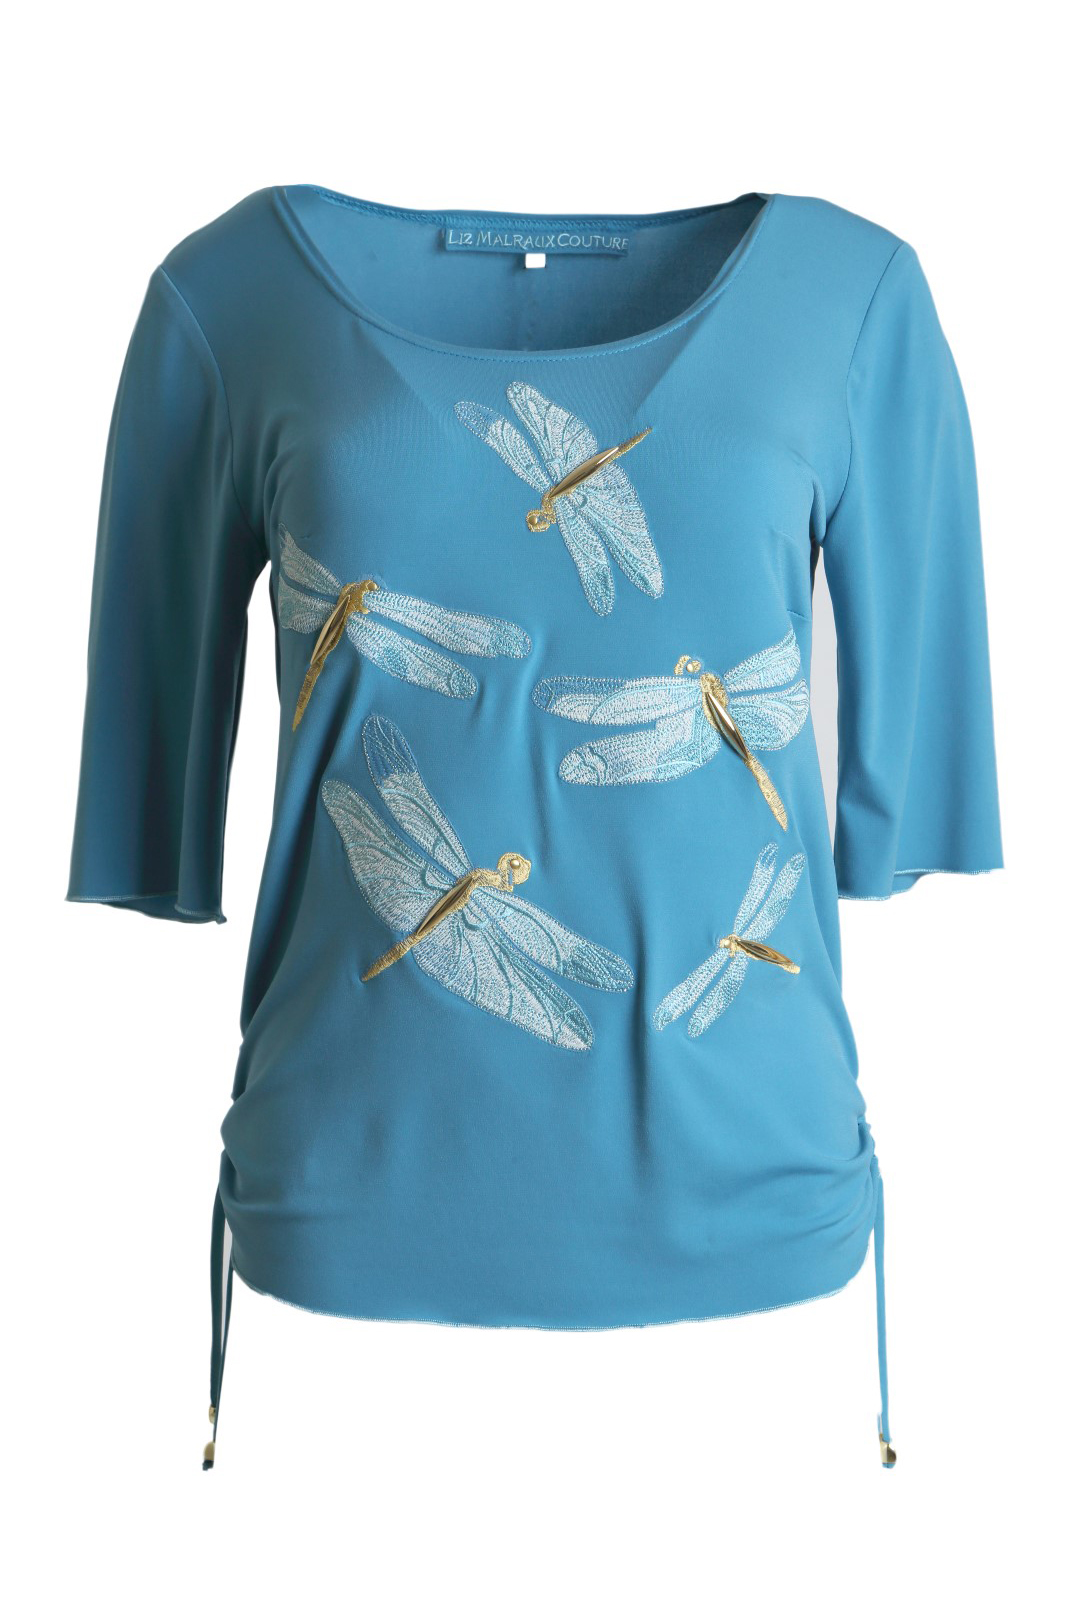 Shirt Dragon Fly with Dragon Fly-embroidery